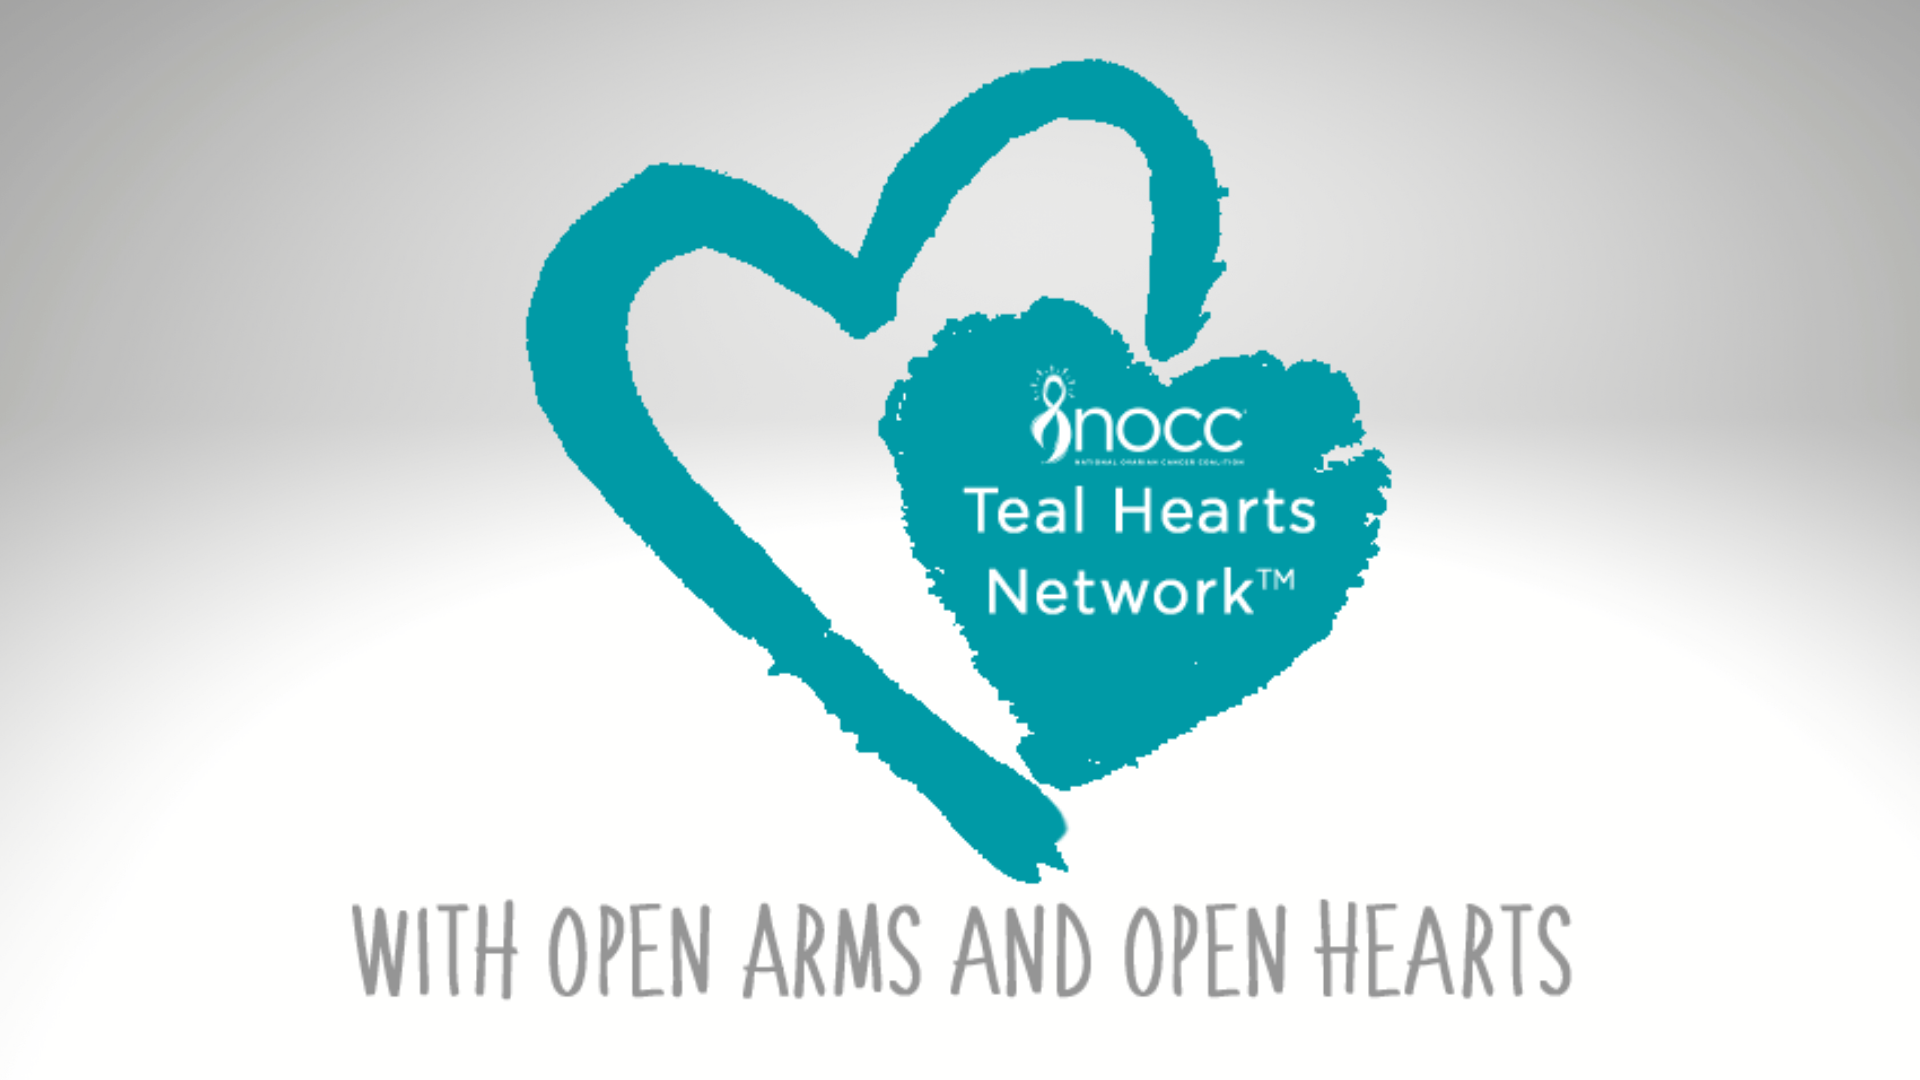 National_Teal Hearts